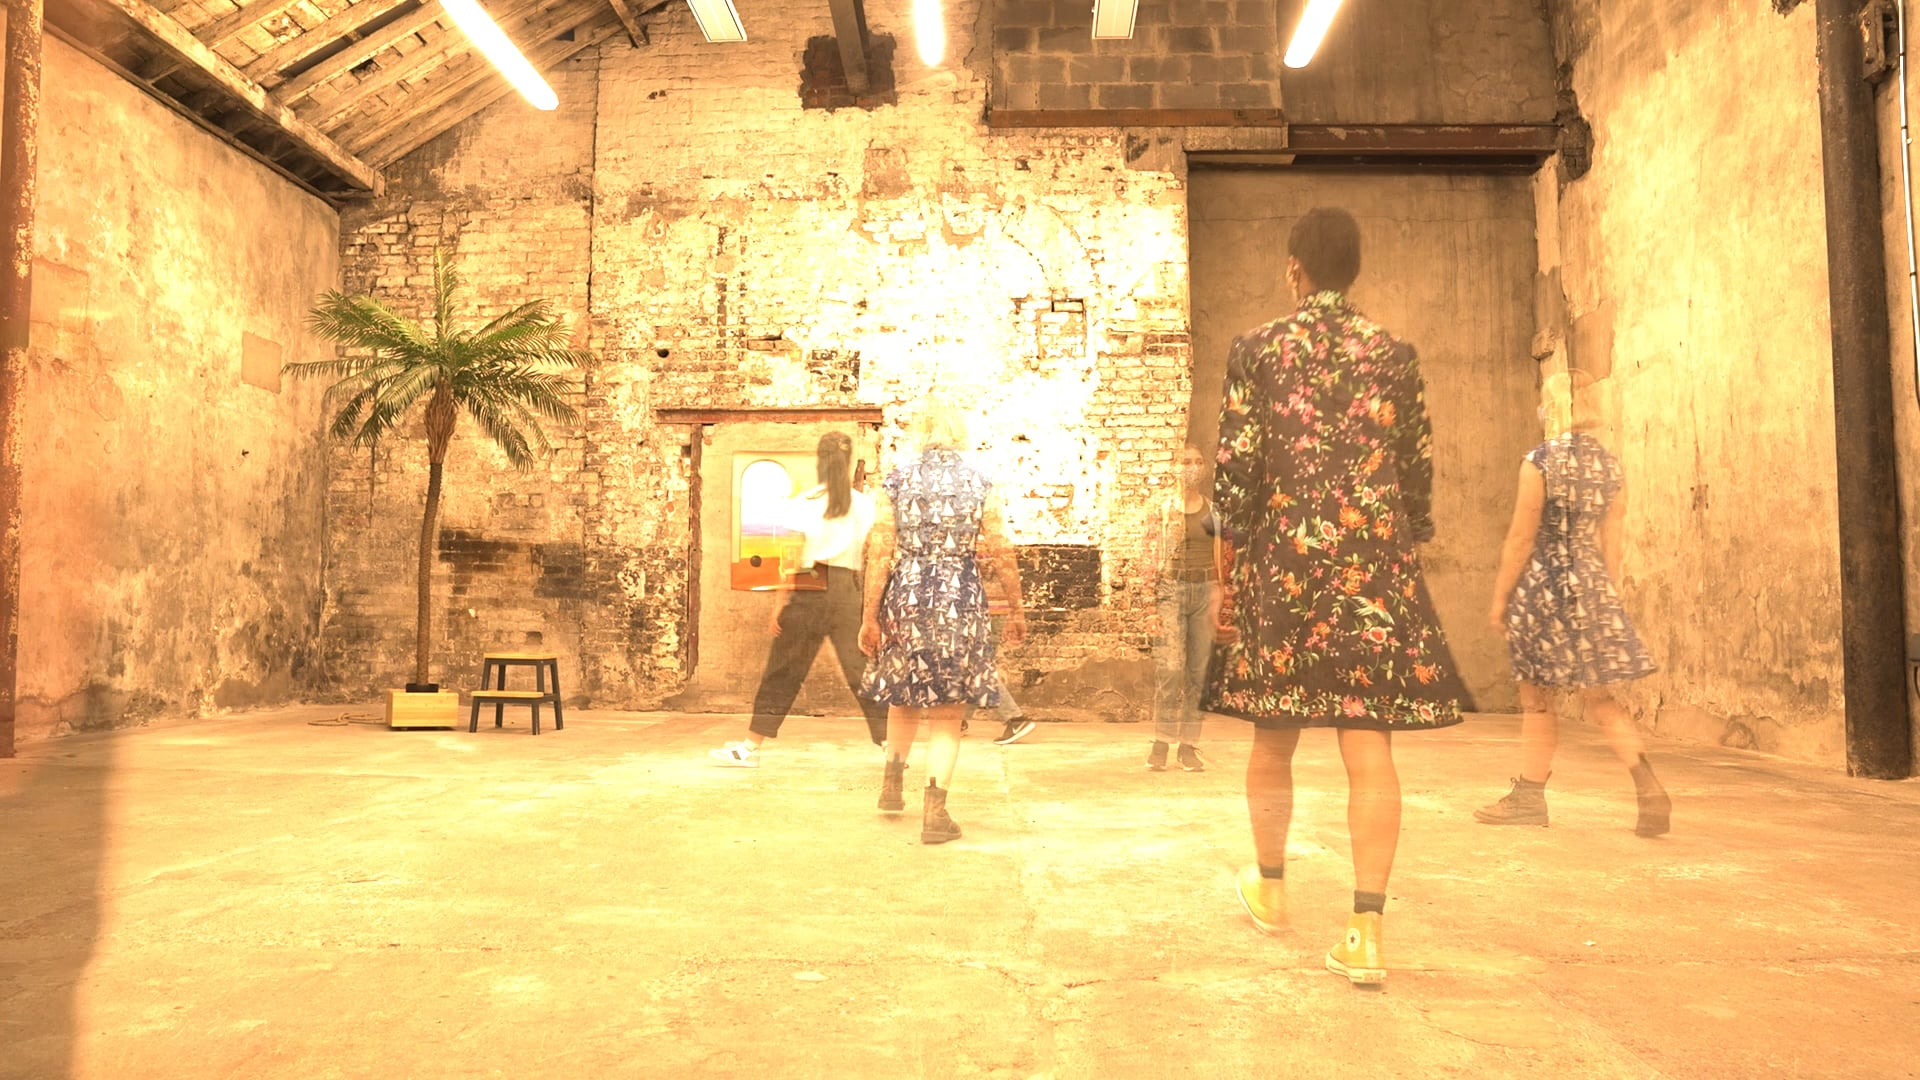 A Piece of my Heart by Justine Doswell - Trailer for Dancer from the Dance Festival 2021